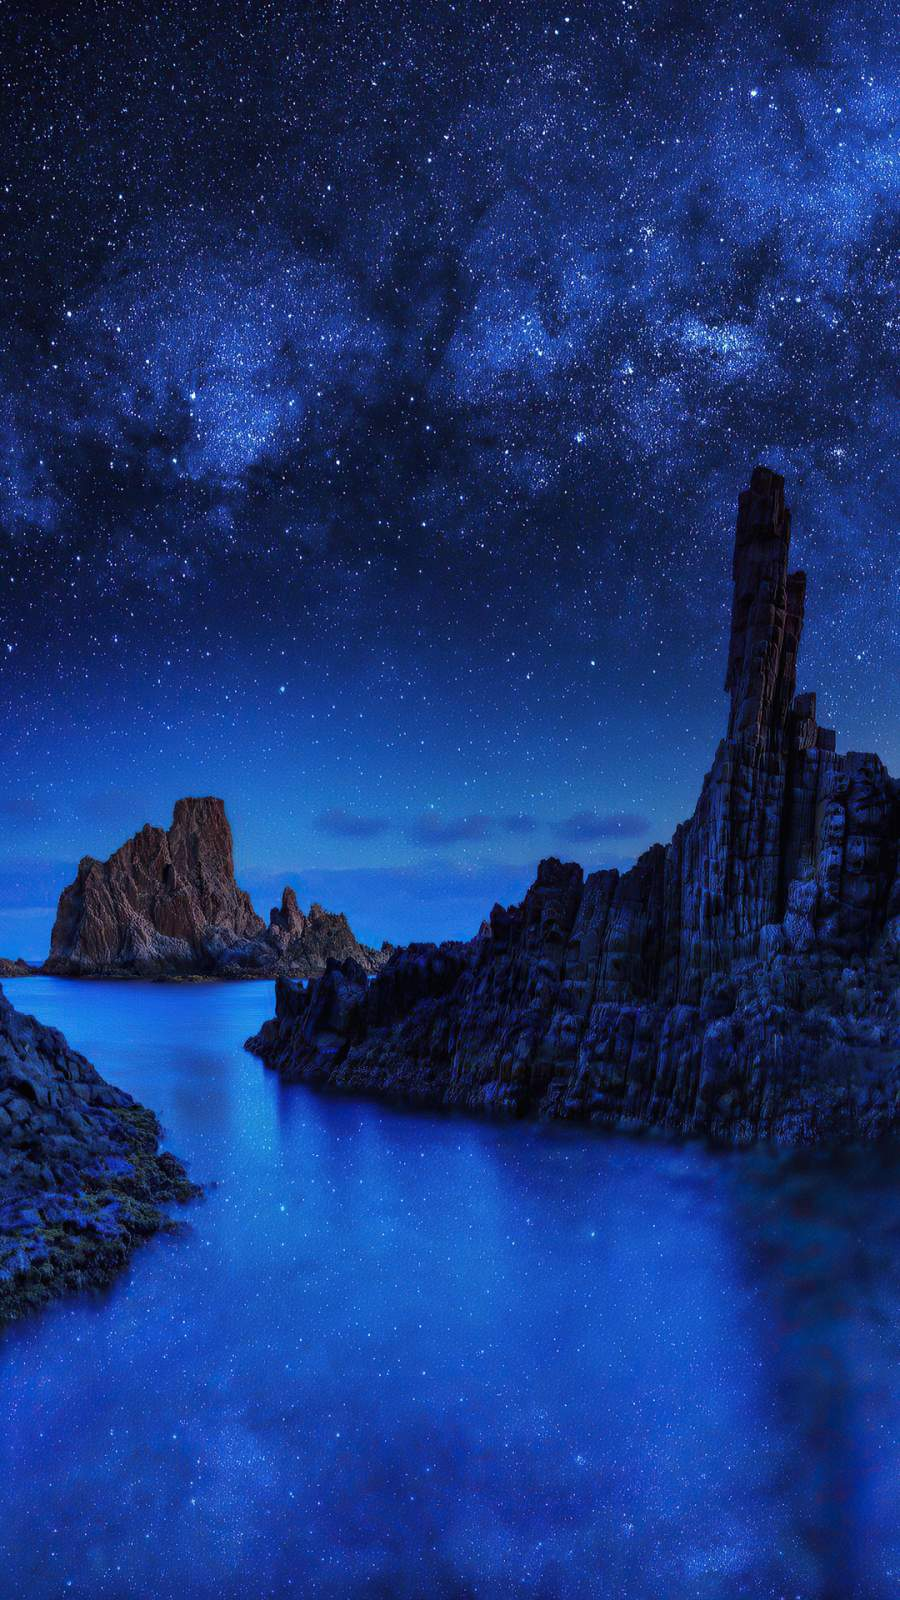 Ocean Rocks on Starry Night